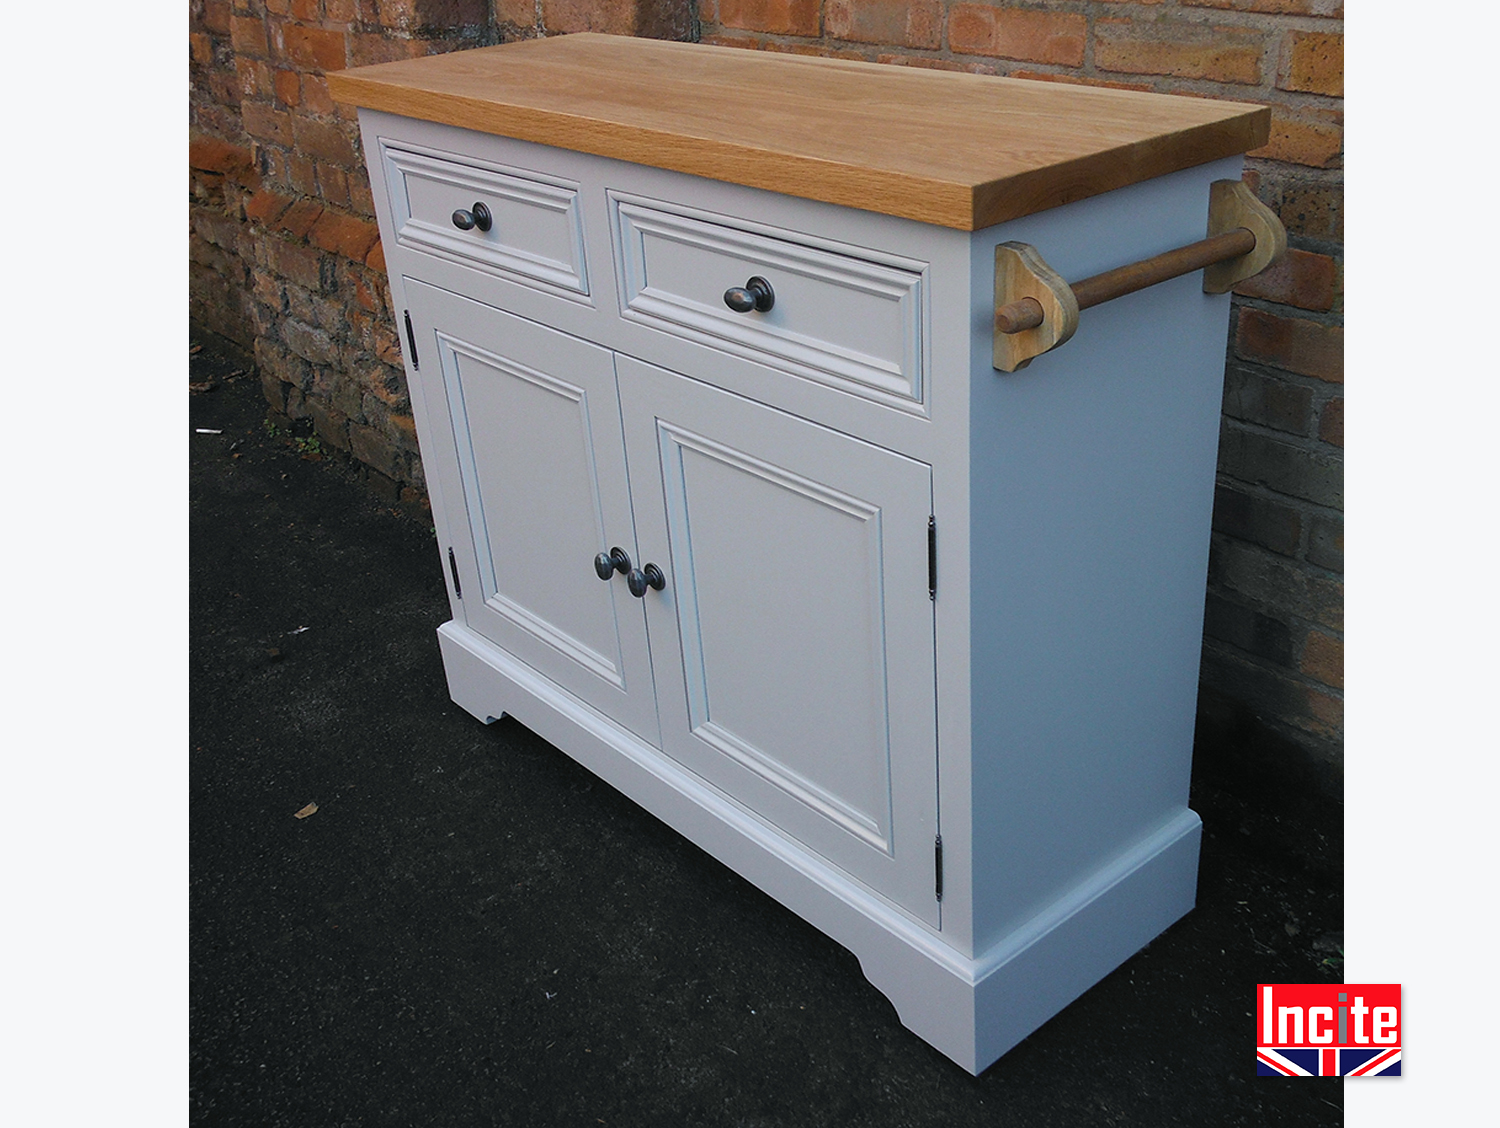 Painted Oak Top Cabinet with Towel Rail by Incite, Derby